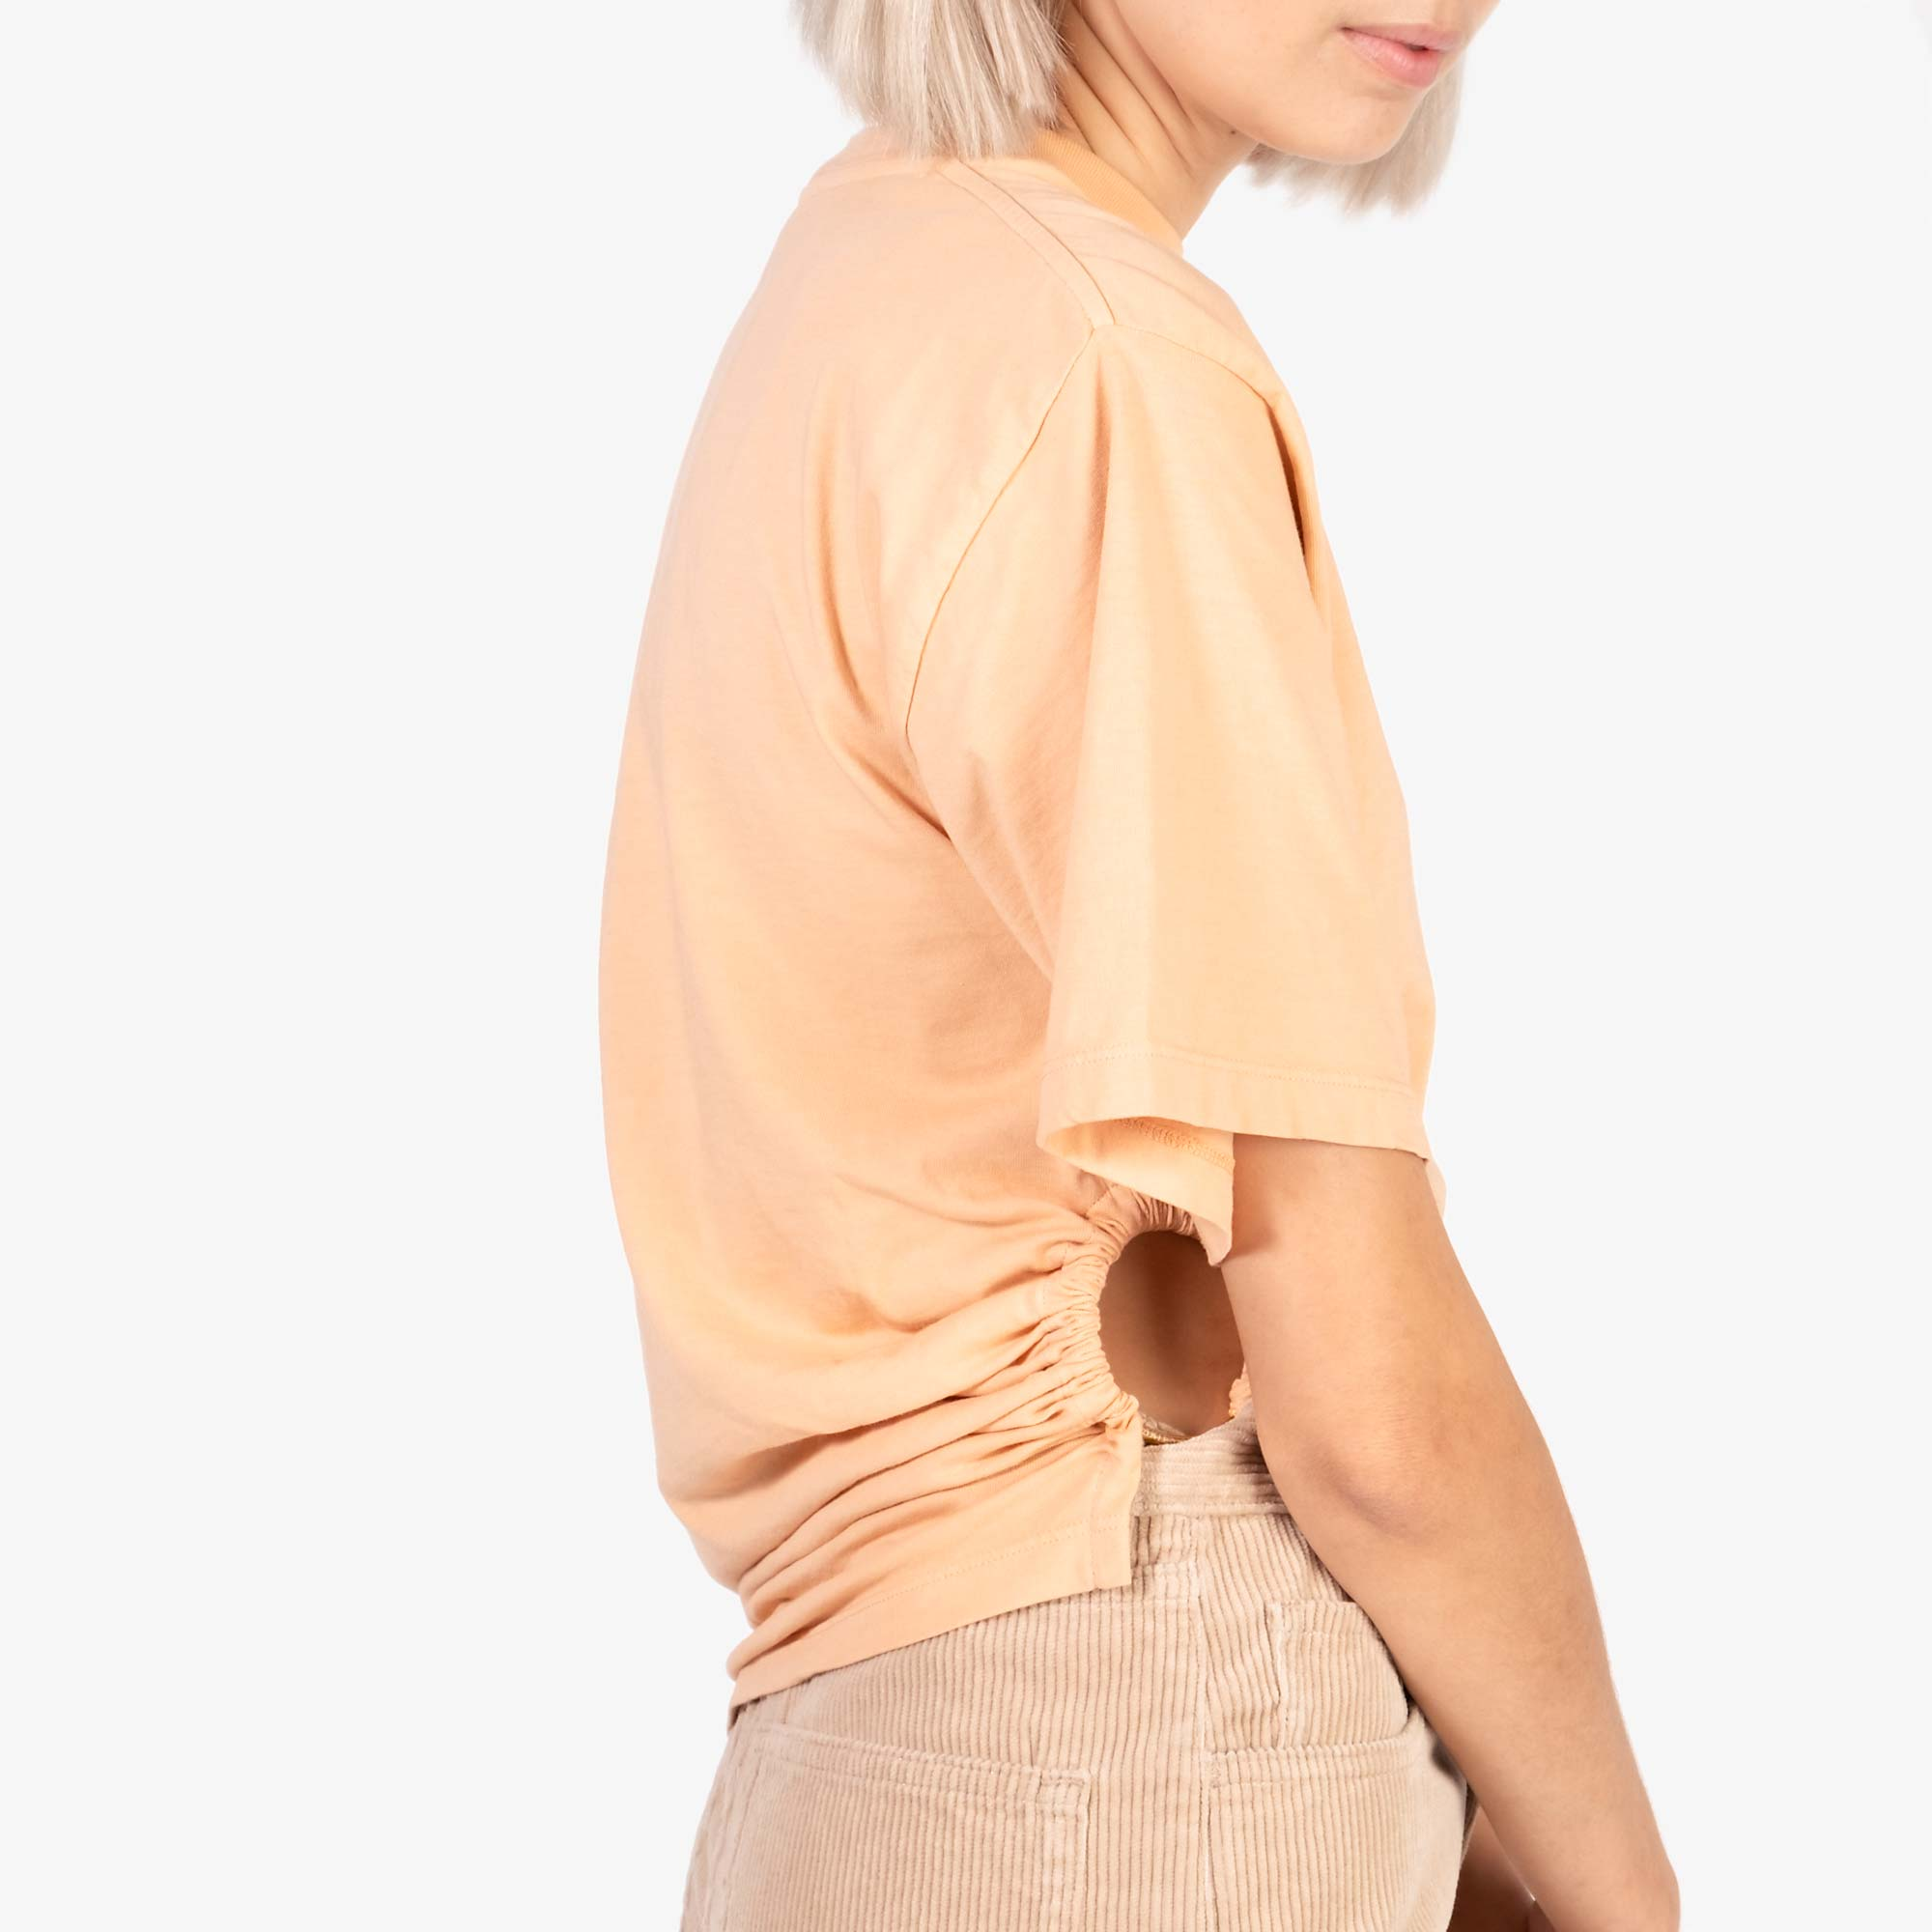 Aries Women's Ring Tee - Peach 6